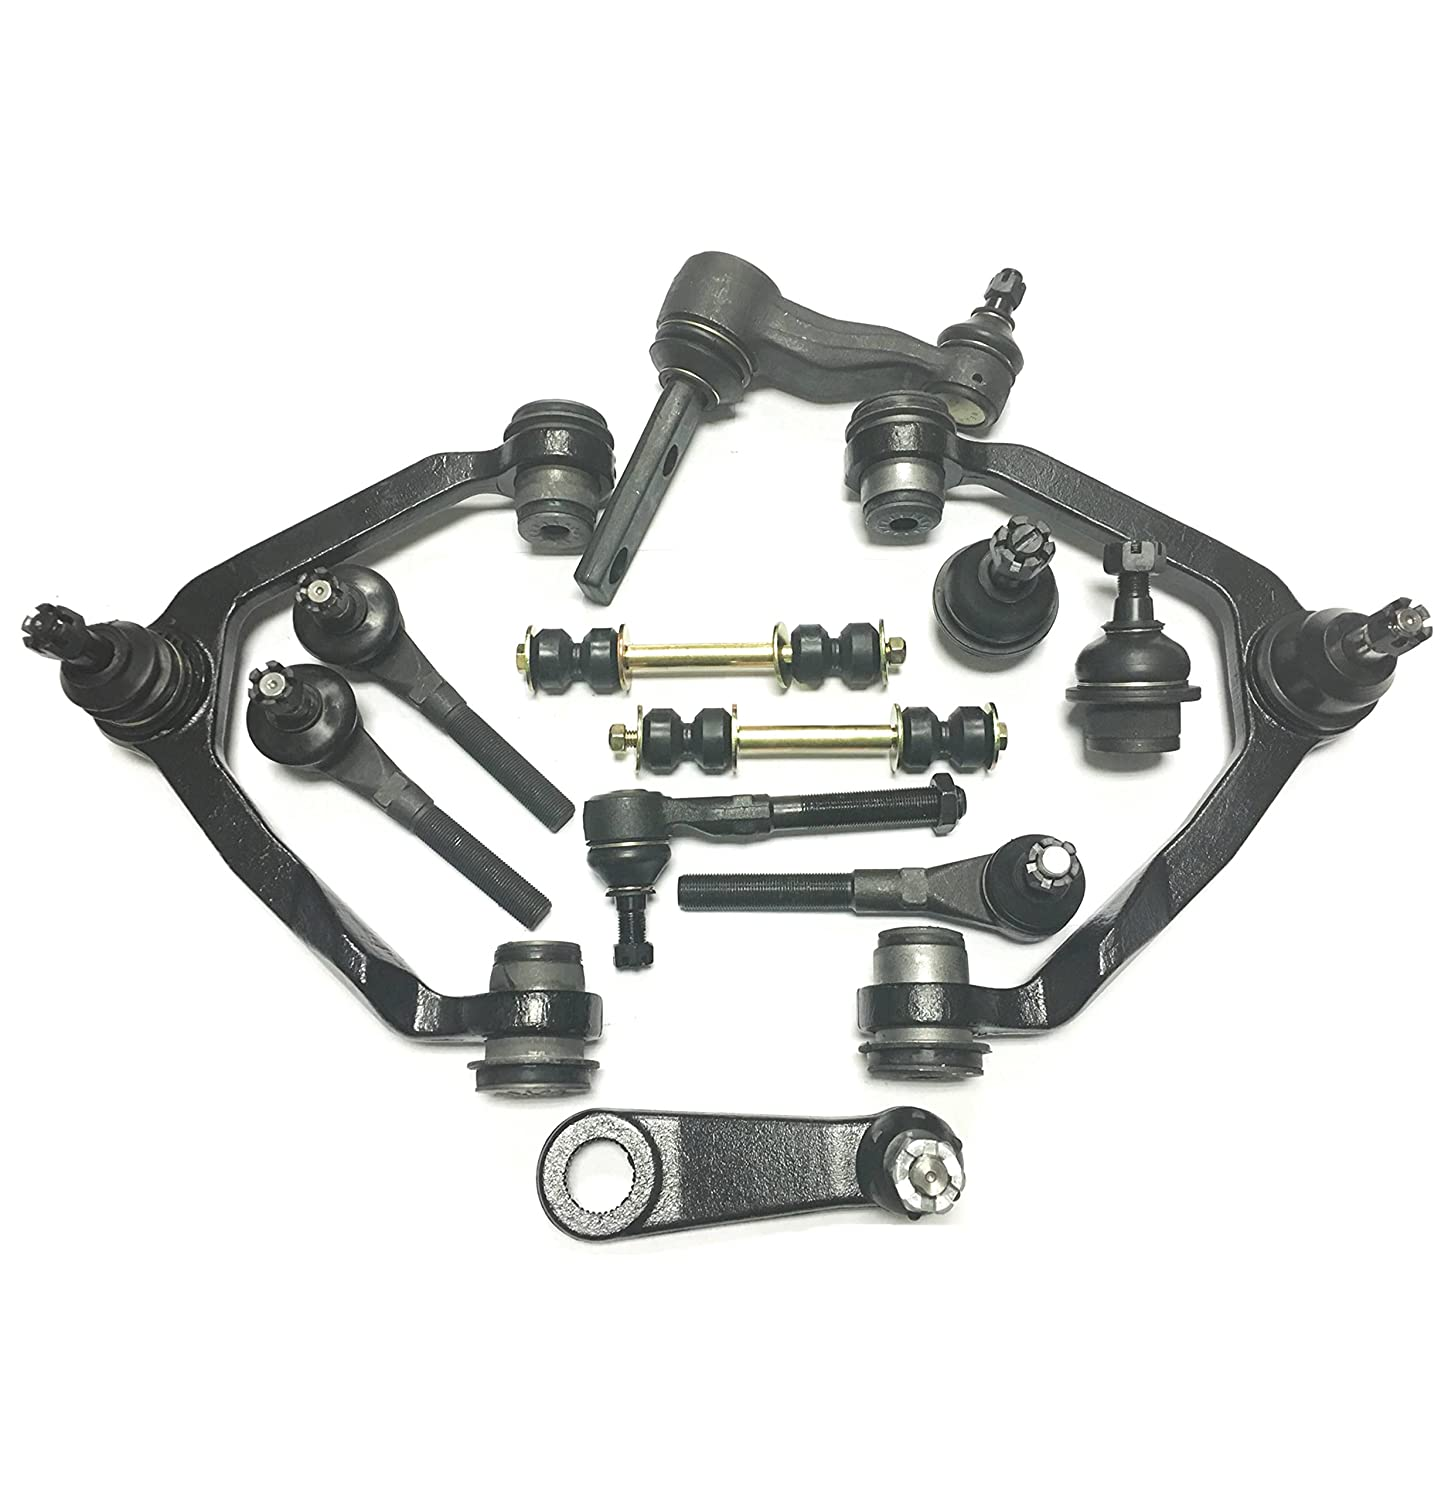 Partsw 12 Pc Suspension Kit For Ford F 150 Expedition 1999 F150 Engine Diagram Of Parts 250 Lincoln Blackwood Navigator 2 Lower Ball Joints Upper Control Arm With